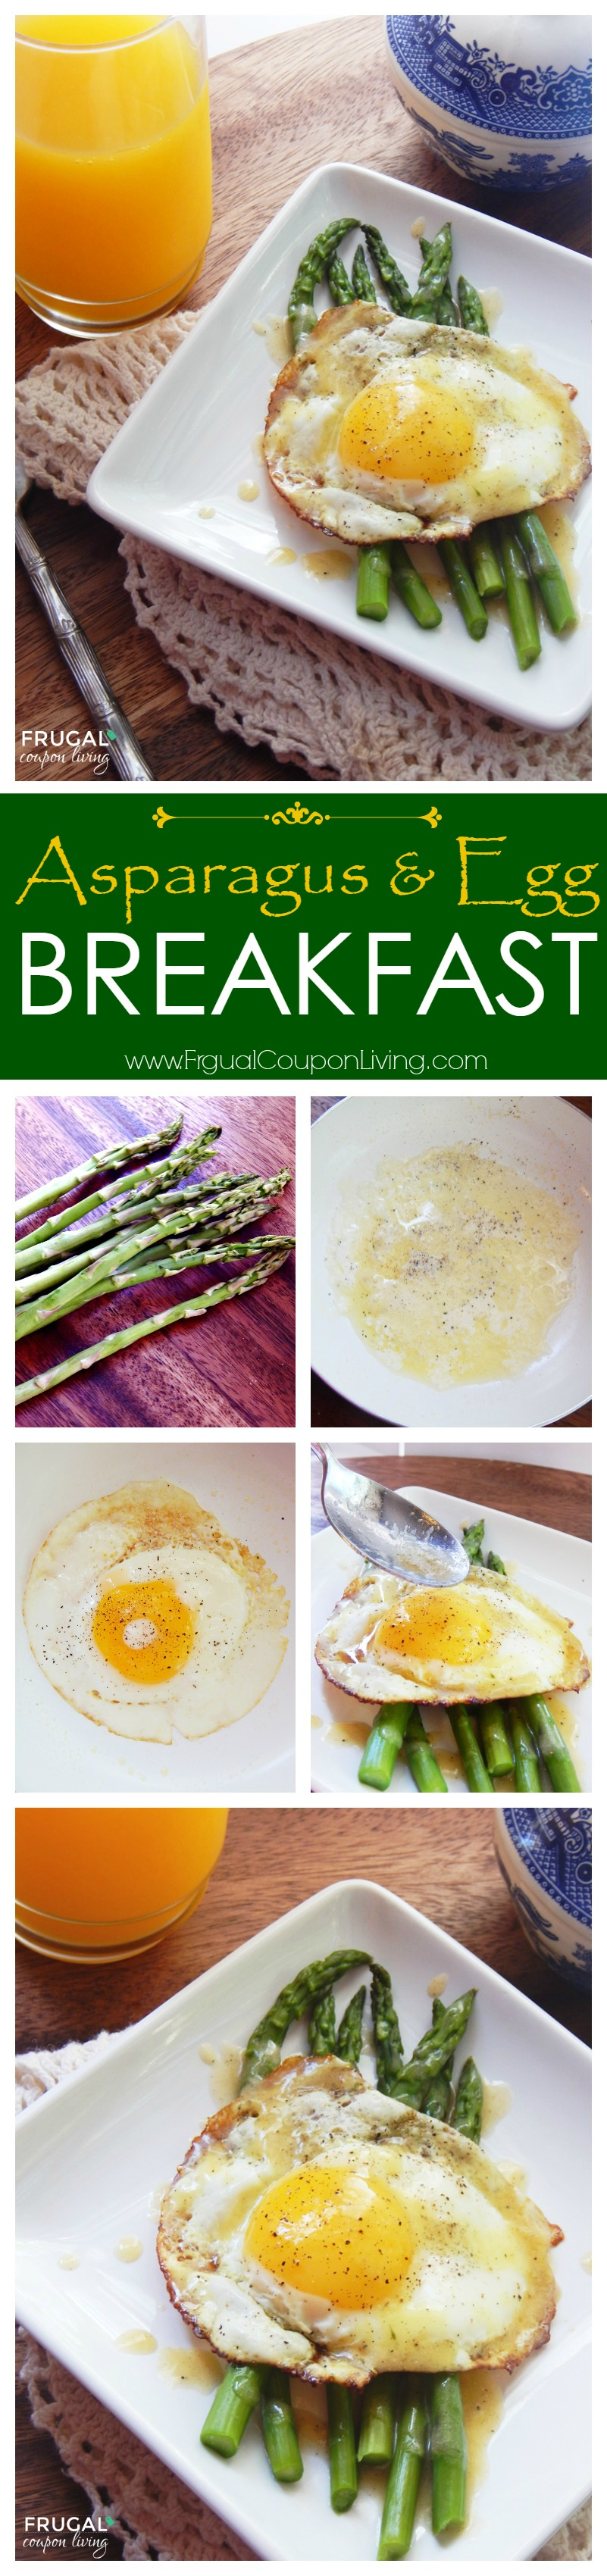 asparagus-breakfast-Collage-frugal-coupon-living